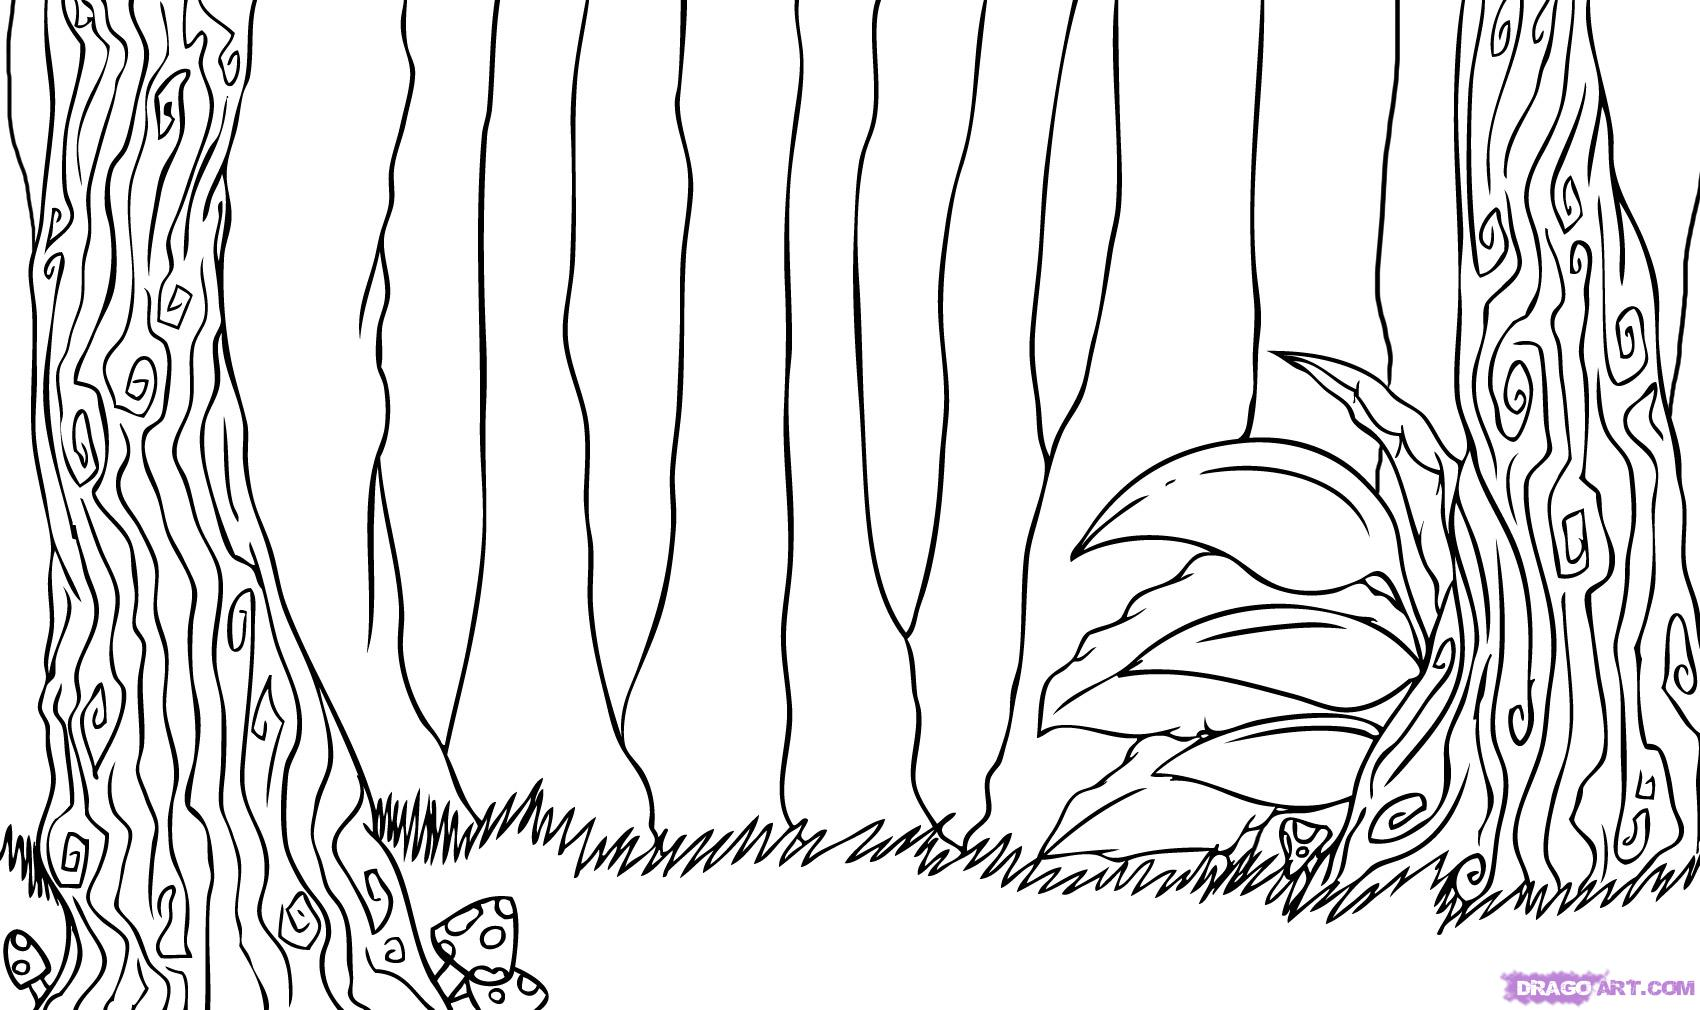 Drawn rainforest jungle scenery Kids drawings how Background Pages